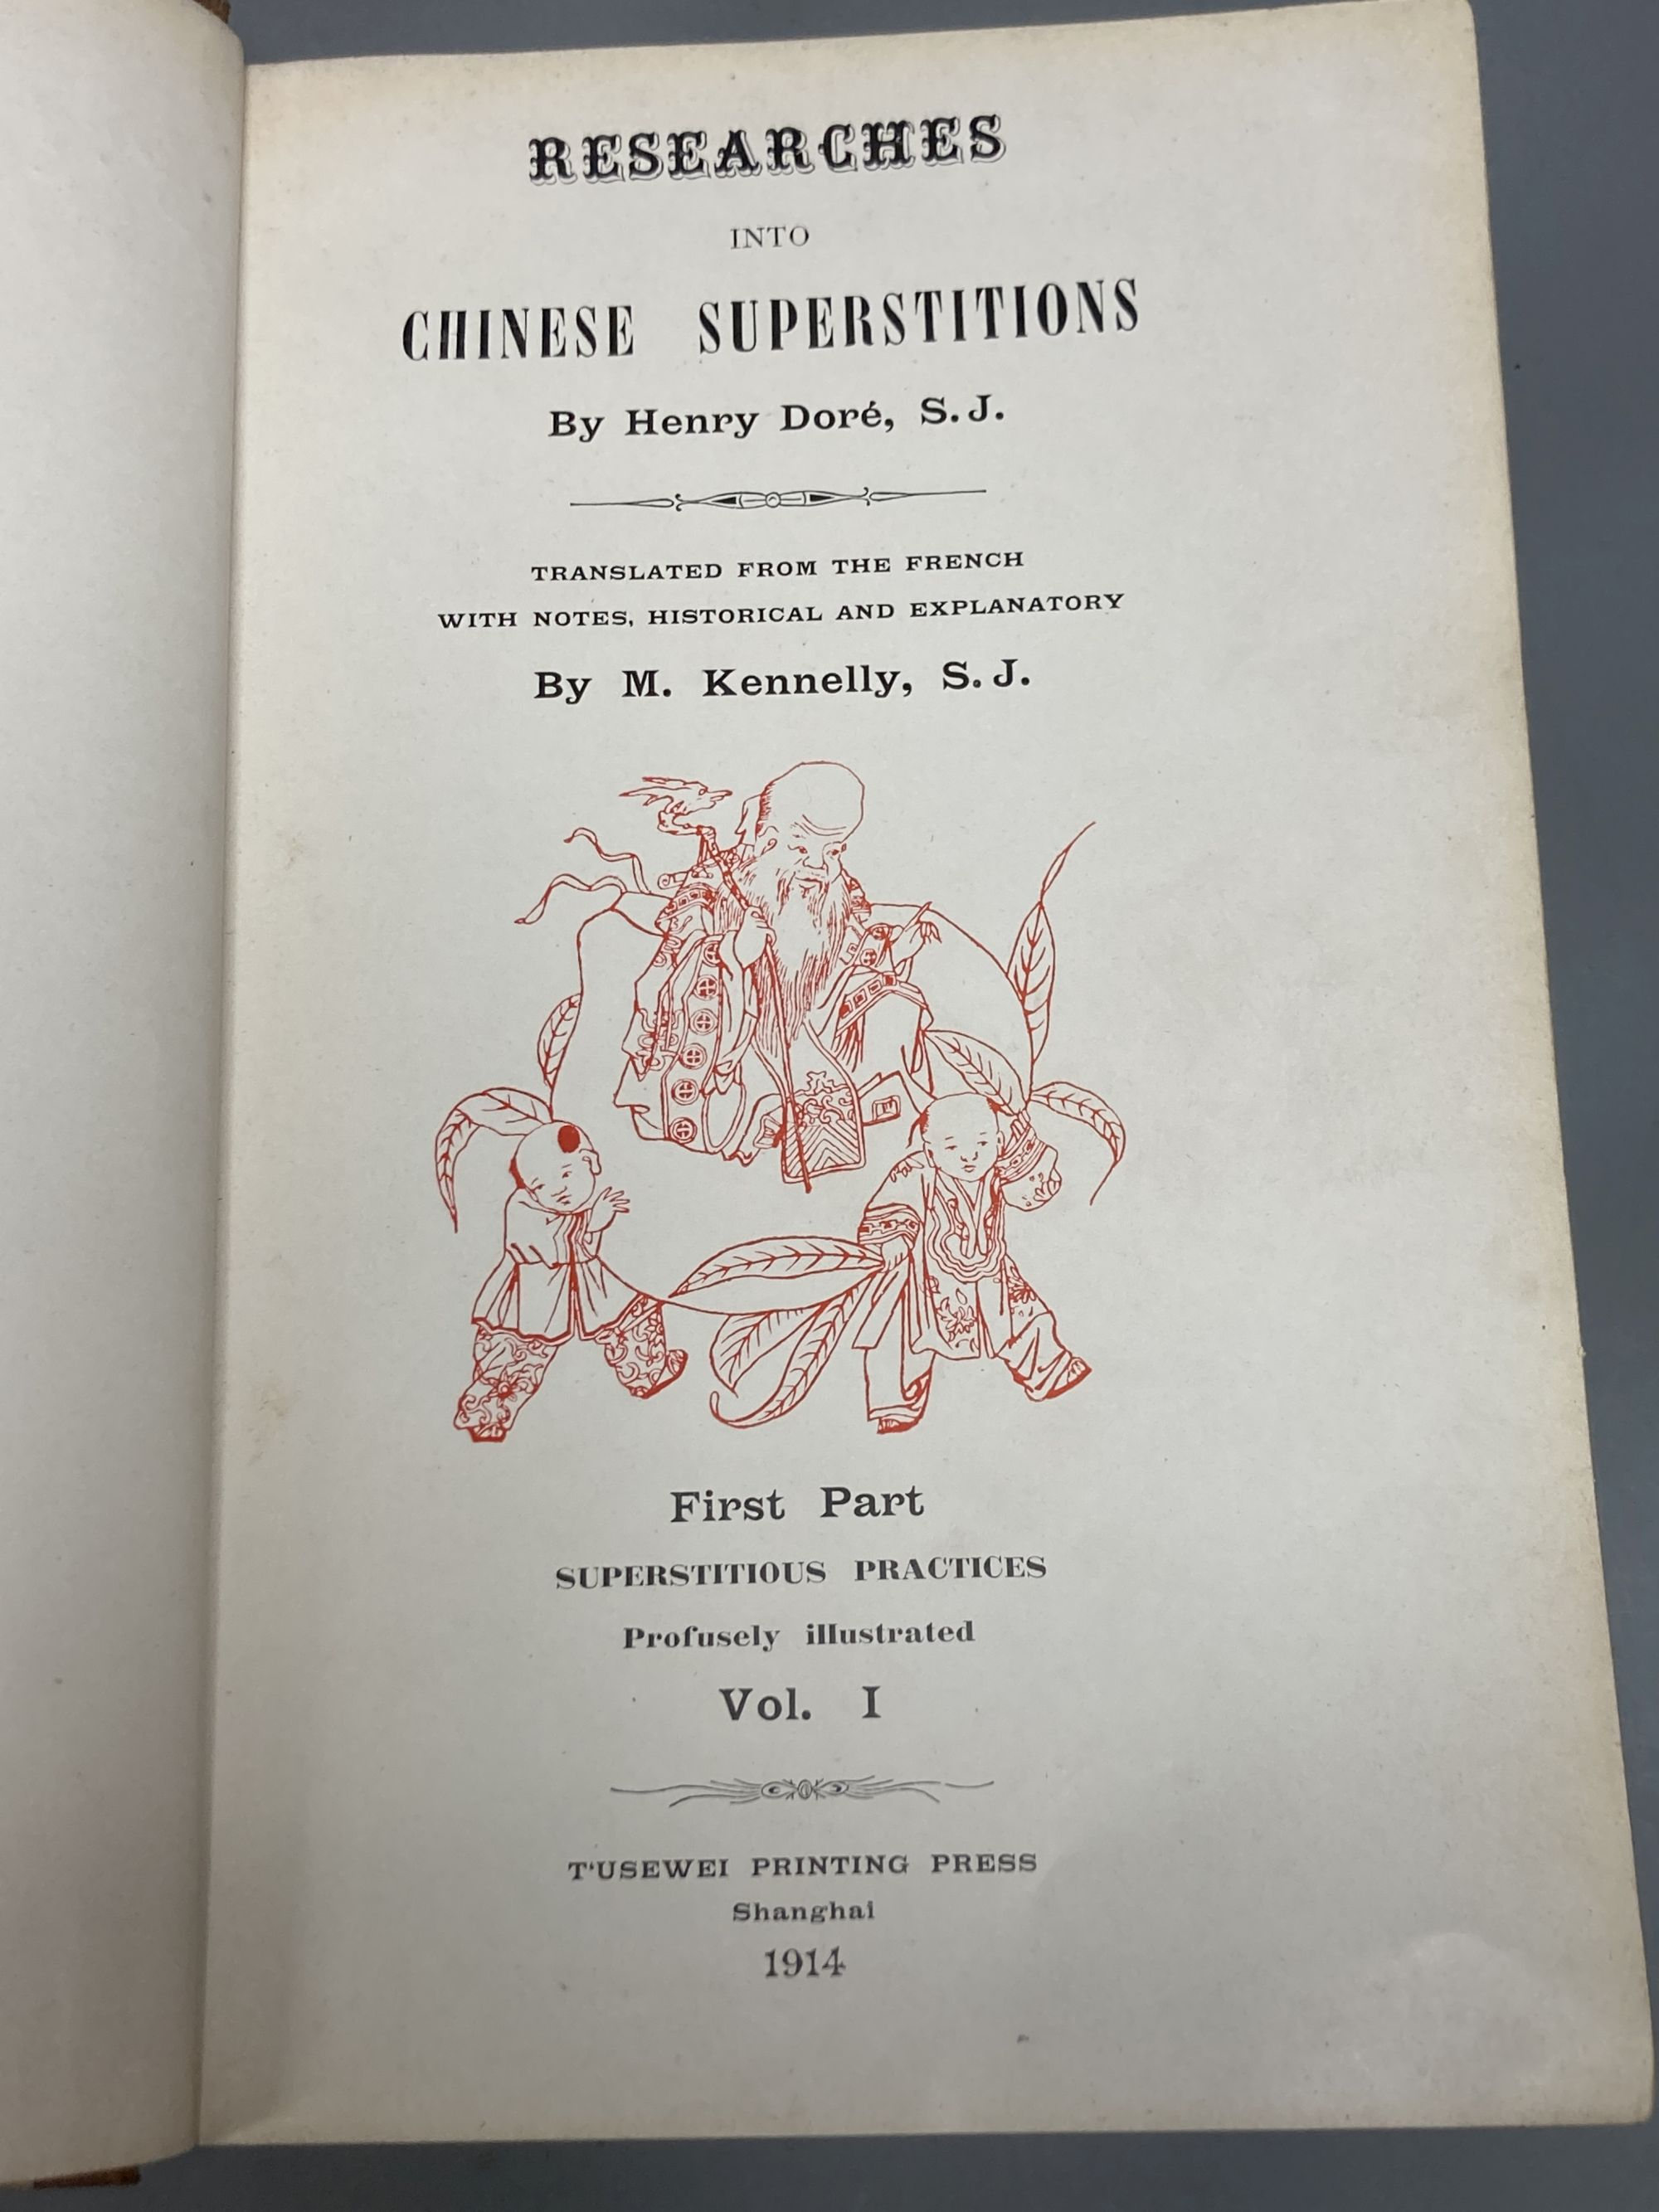 Researches into Chinese superstitions, by Henry Dore´ ; translated from the French, with notes, - Image 4 of 4